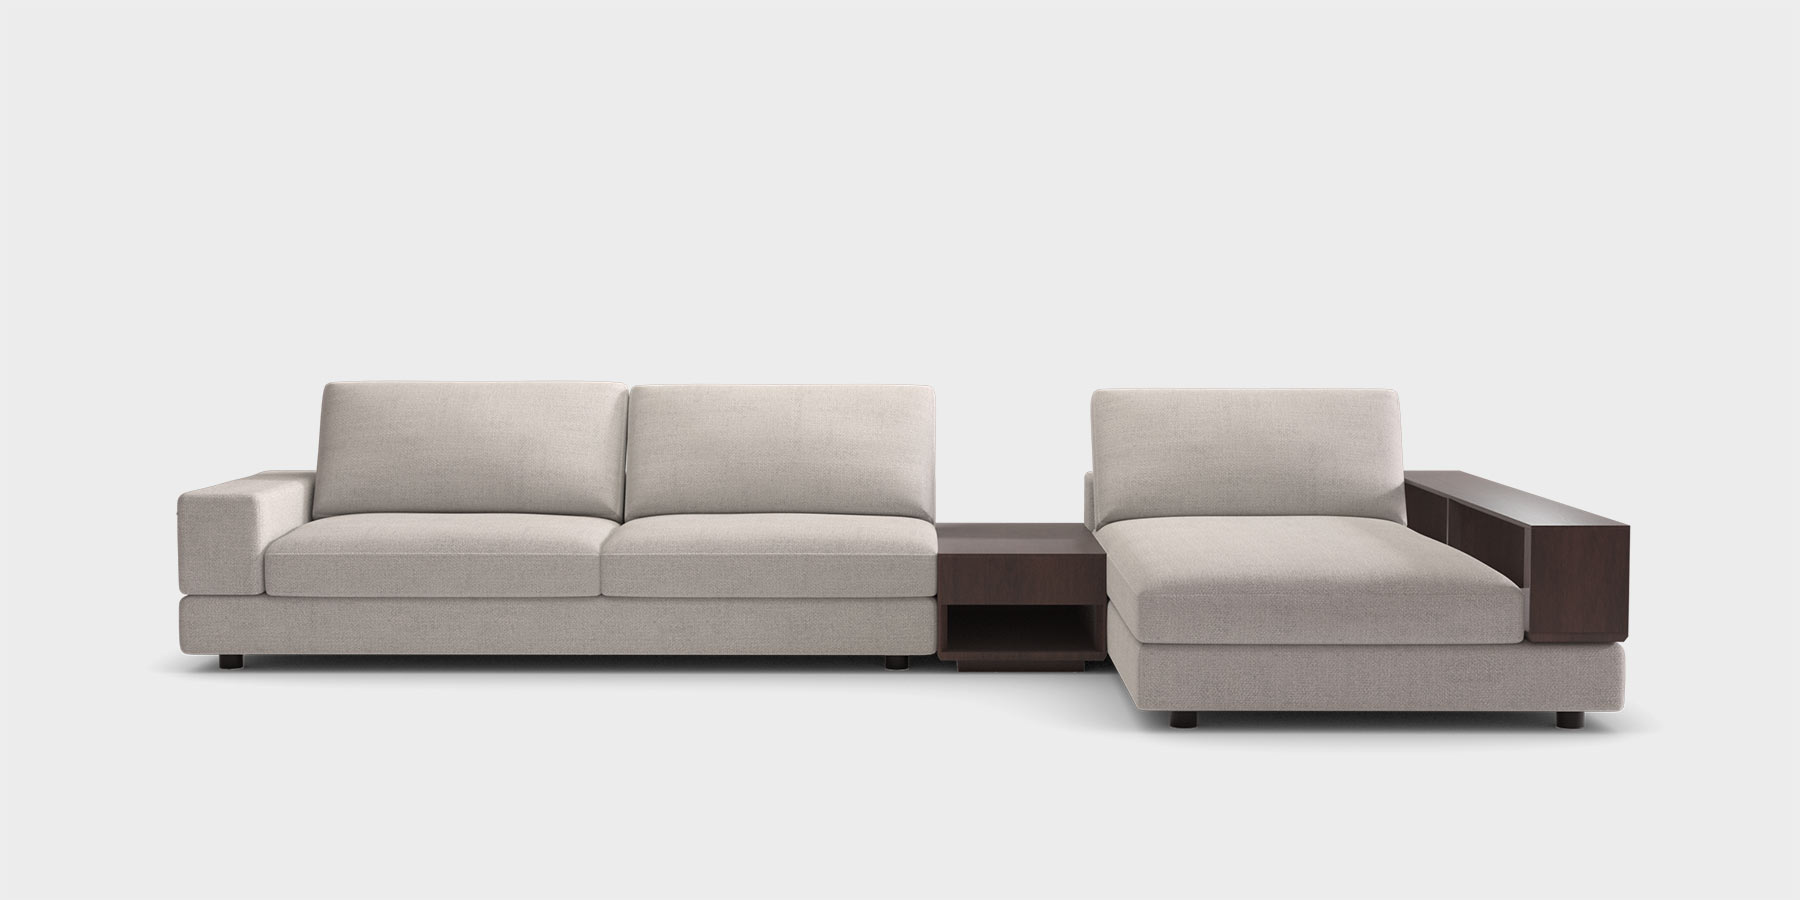 Jasper Modular Sofa Award Winning Design Modular Lounge Couch King Living